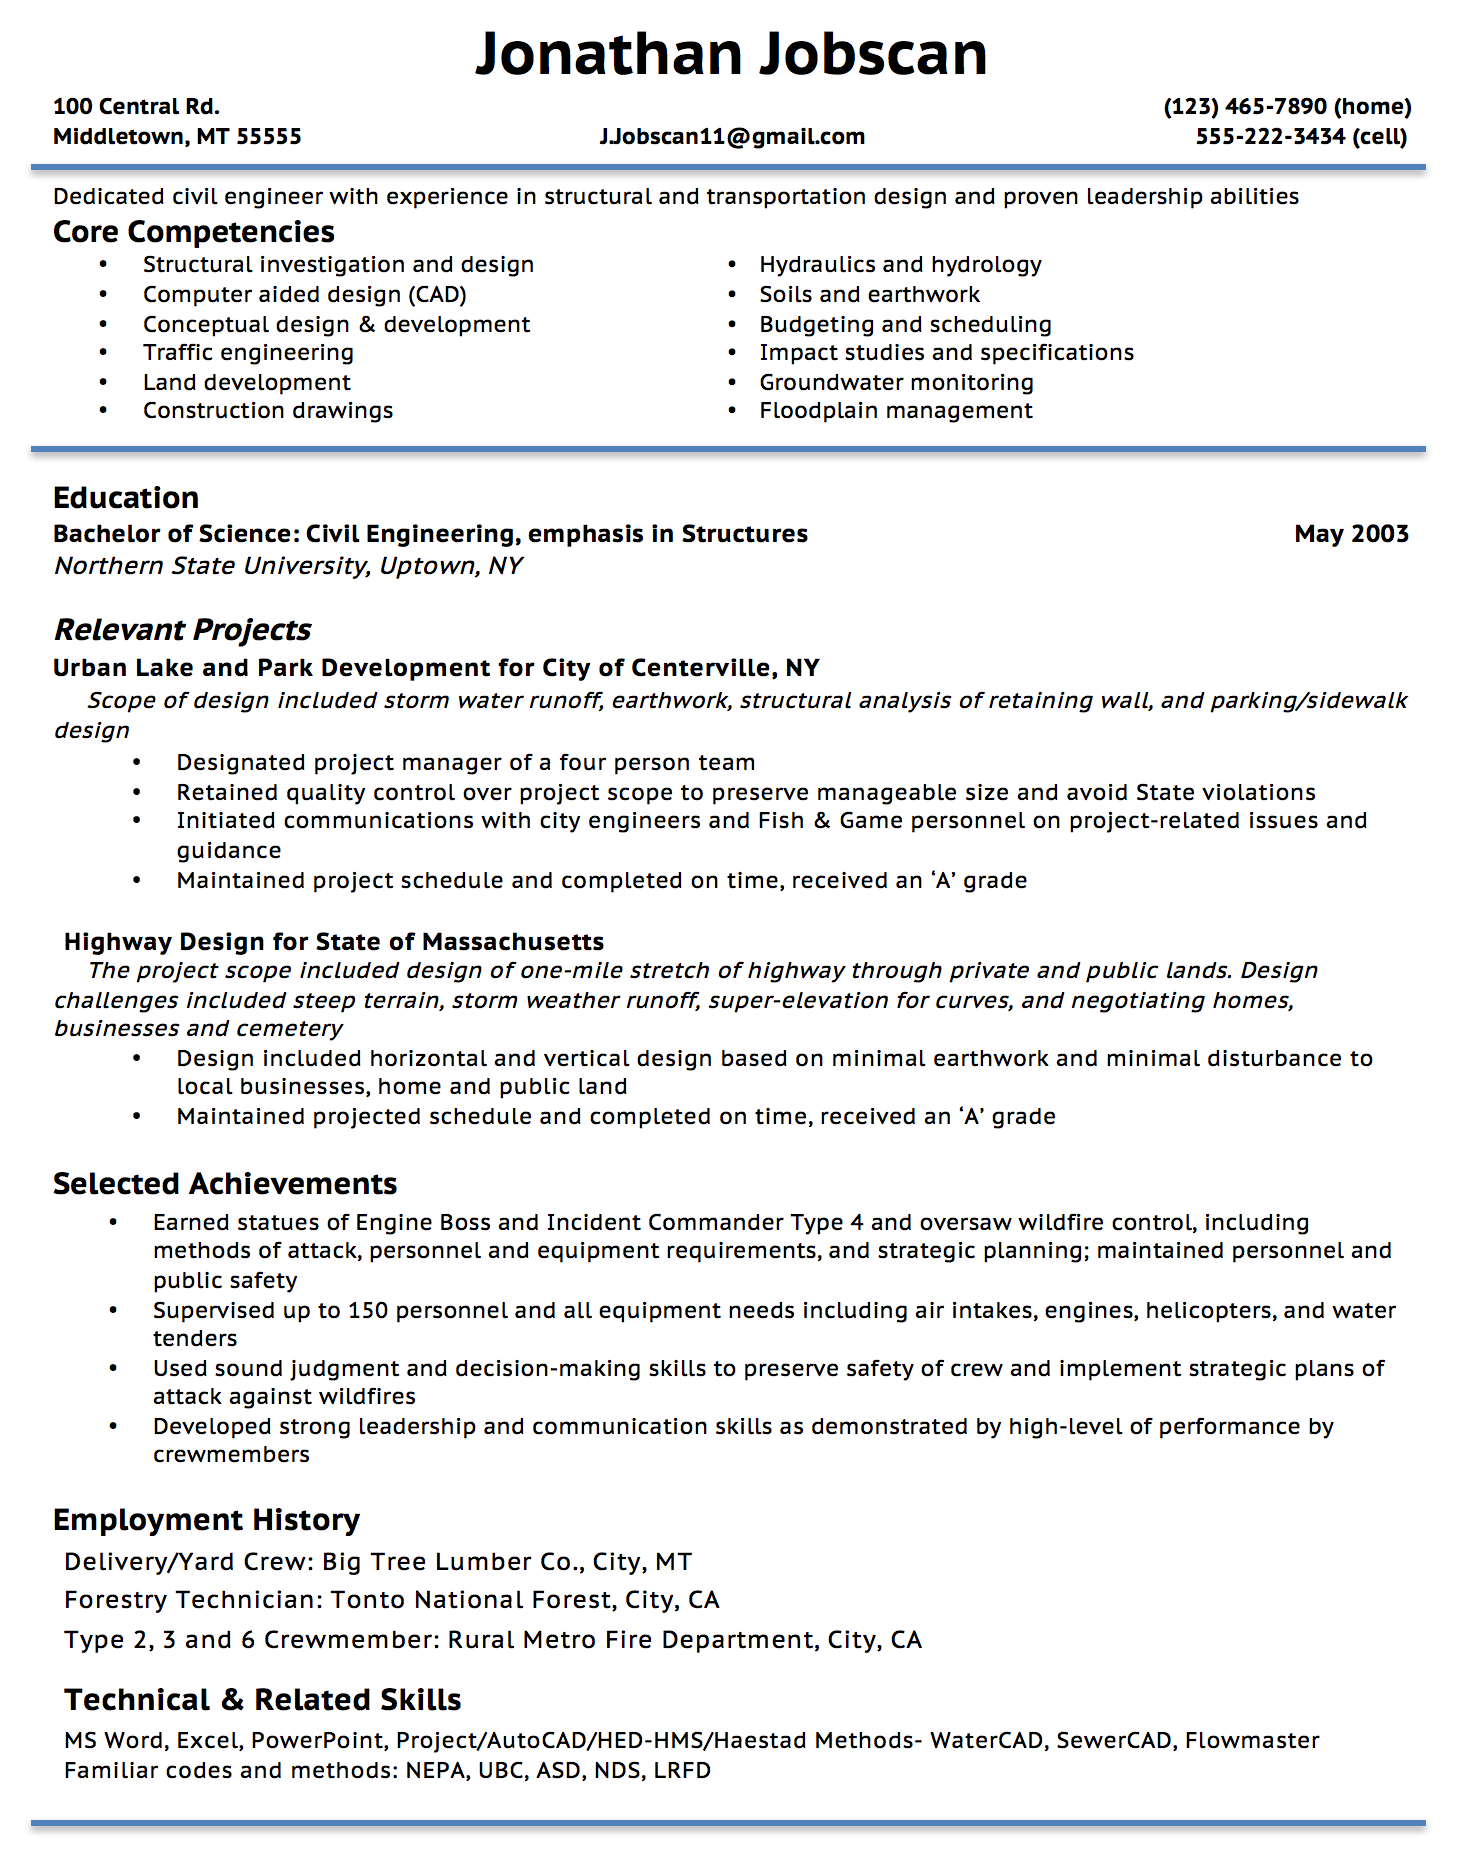 Opposenewapstandardsus  Winning Resume Writing Guide  Jobscan With Lovable Example Of A Functional Resume Format With Comely Medical Sales Resume Sample Also How To Make A Functional Resume In Addition Resume For Daycare Worker And Medical Assistant Resume Template Free As Well As Nurse Sample Resume Additionally How To Organize Resume From Jobscanco With Opposenewapstandardsus  Lovable Resume Writing Guide  Jobscan With Comely Example Of A Functional Resume Format And Winning Medical Sales Resume Sample Also How To Make A Functional Resume In Addition Resume For Daycare Worker From Jobscanco